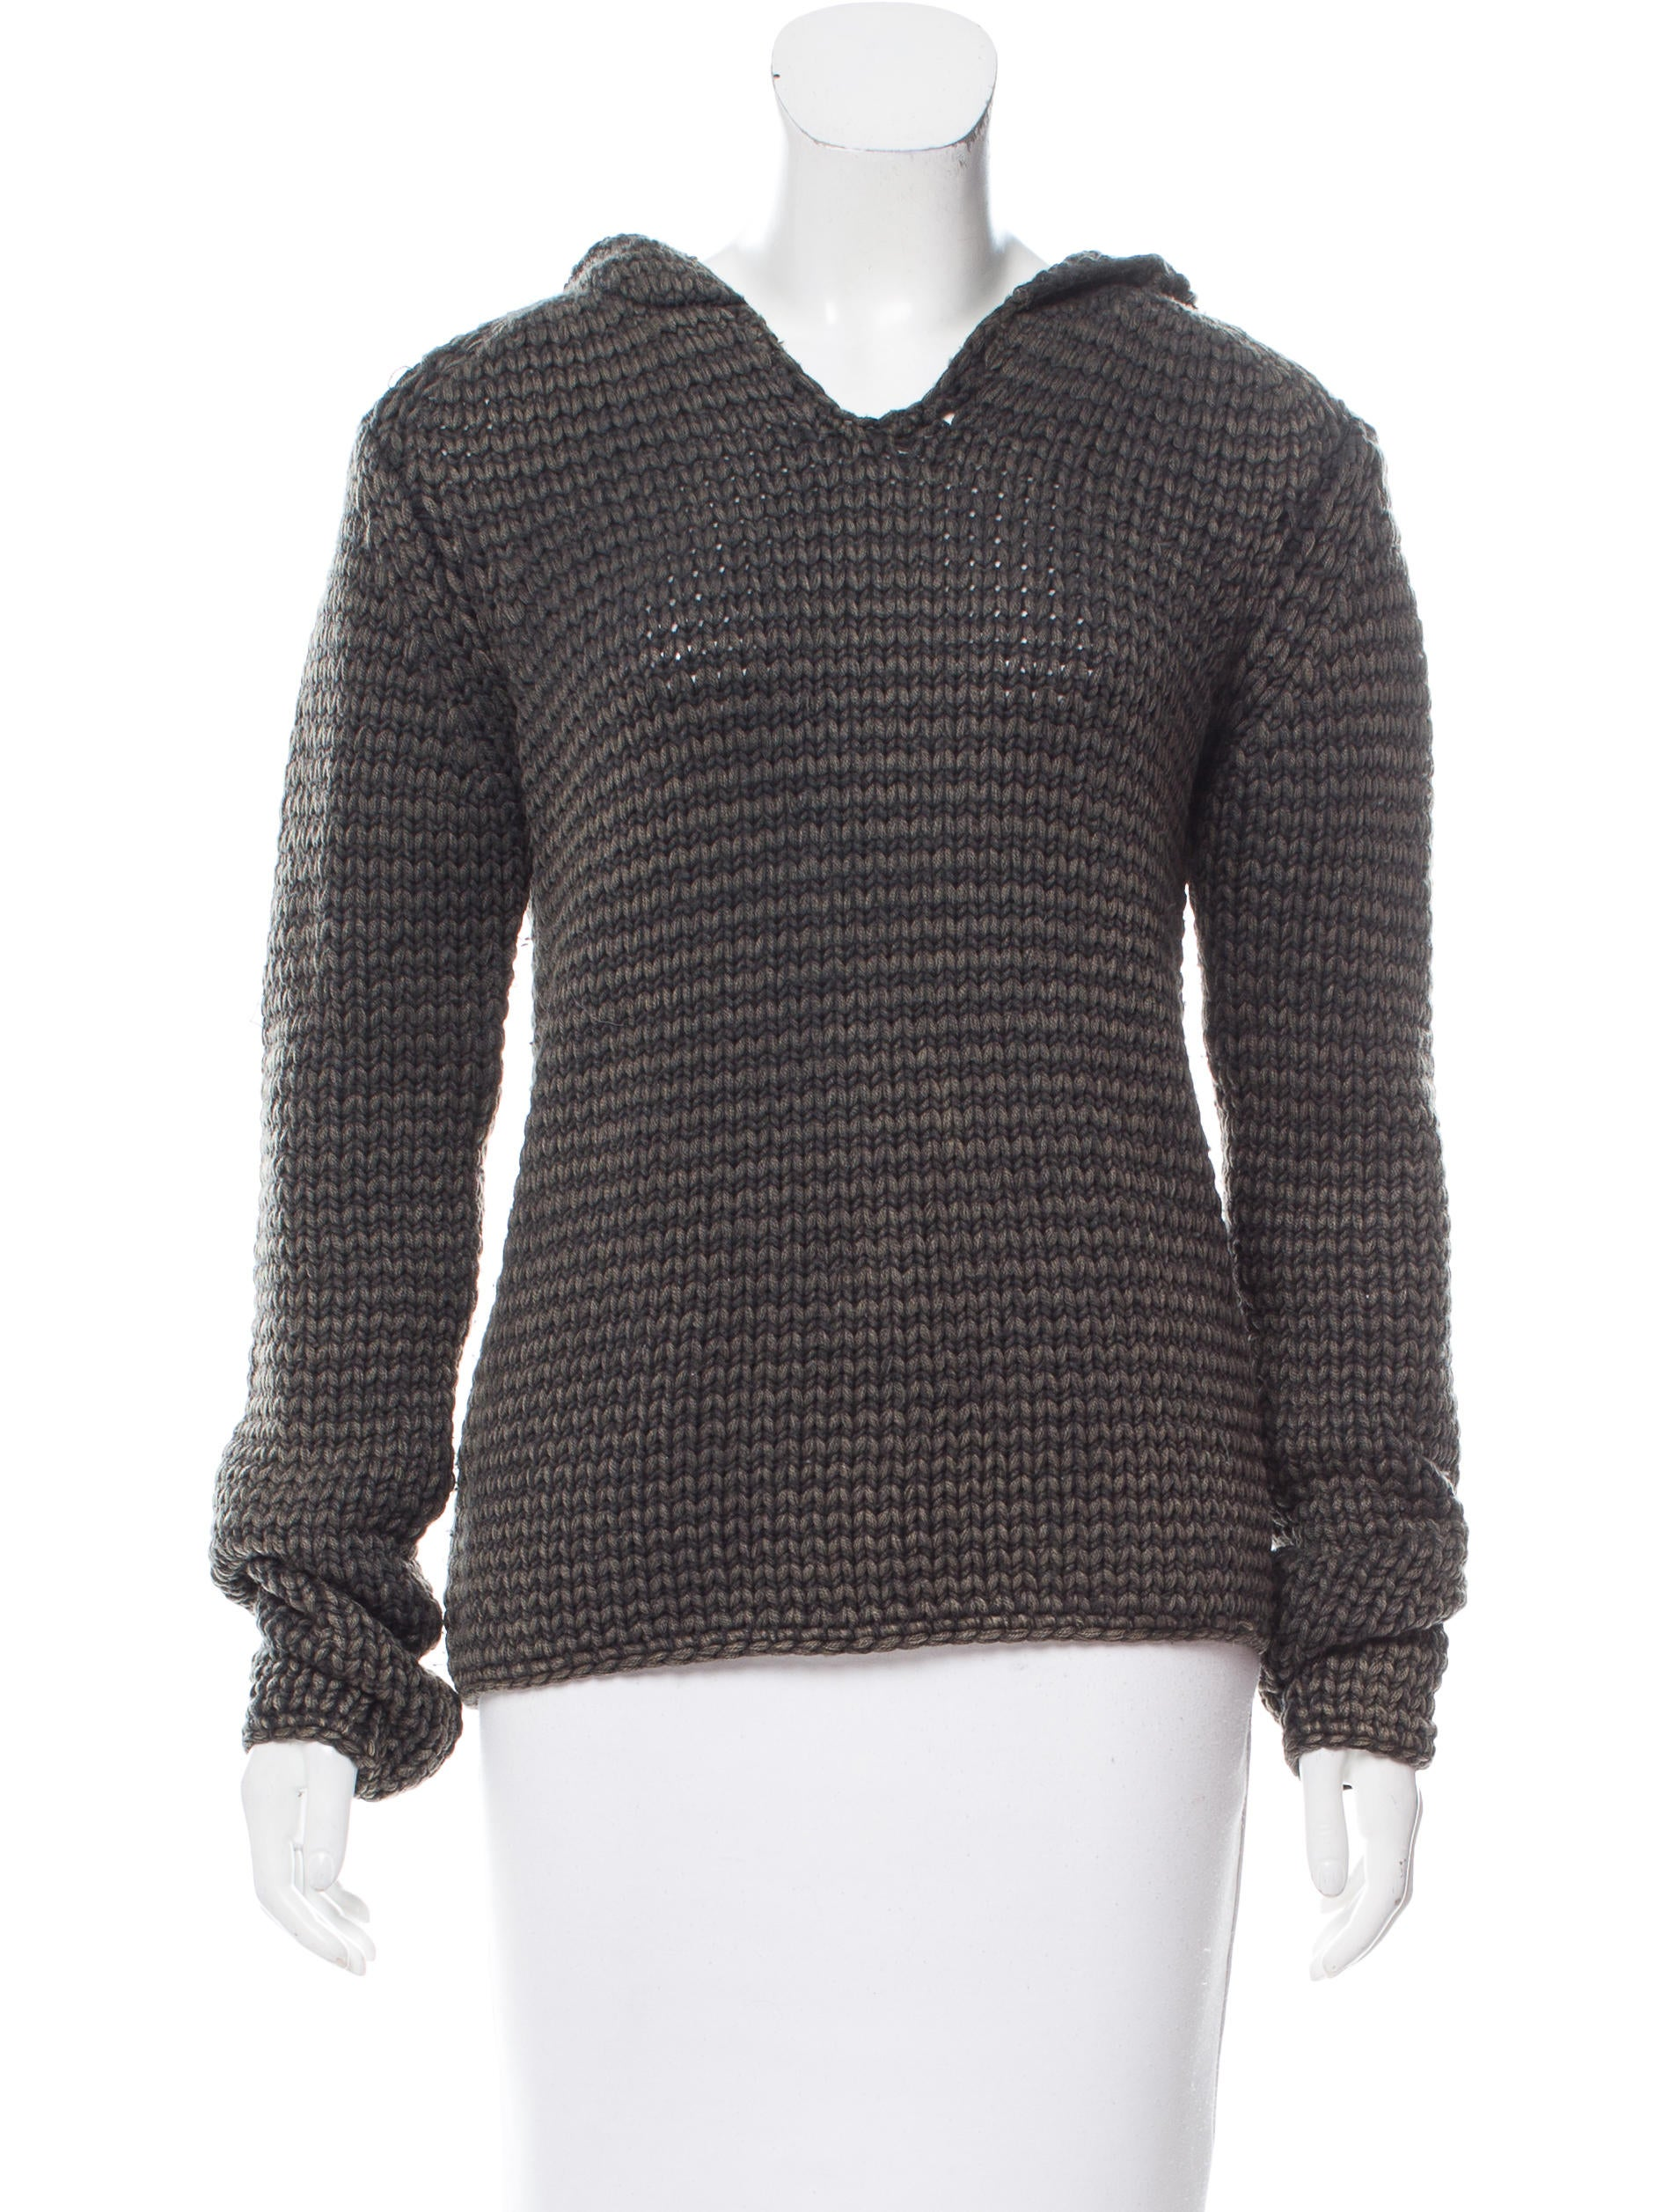 T by Alexander Wang Hooded Wool Sweater - Clothing - WTB35305 ...